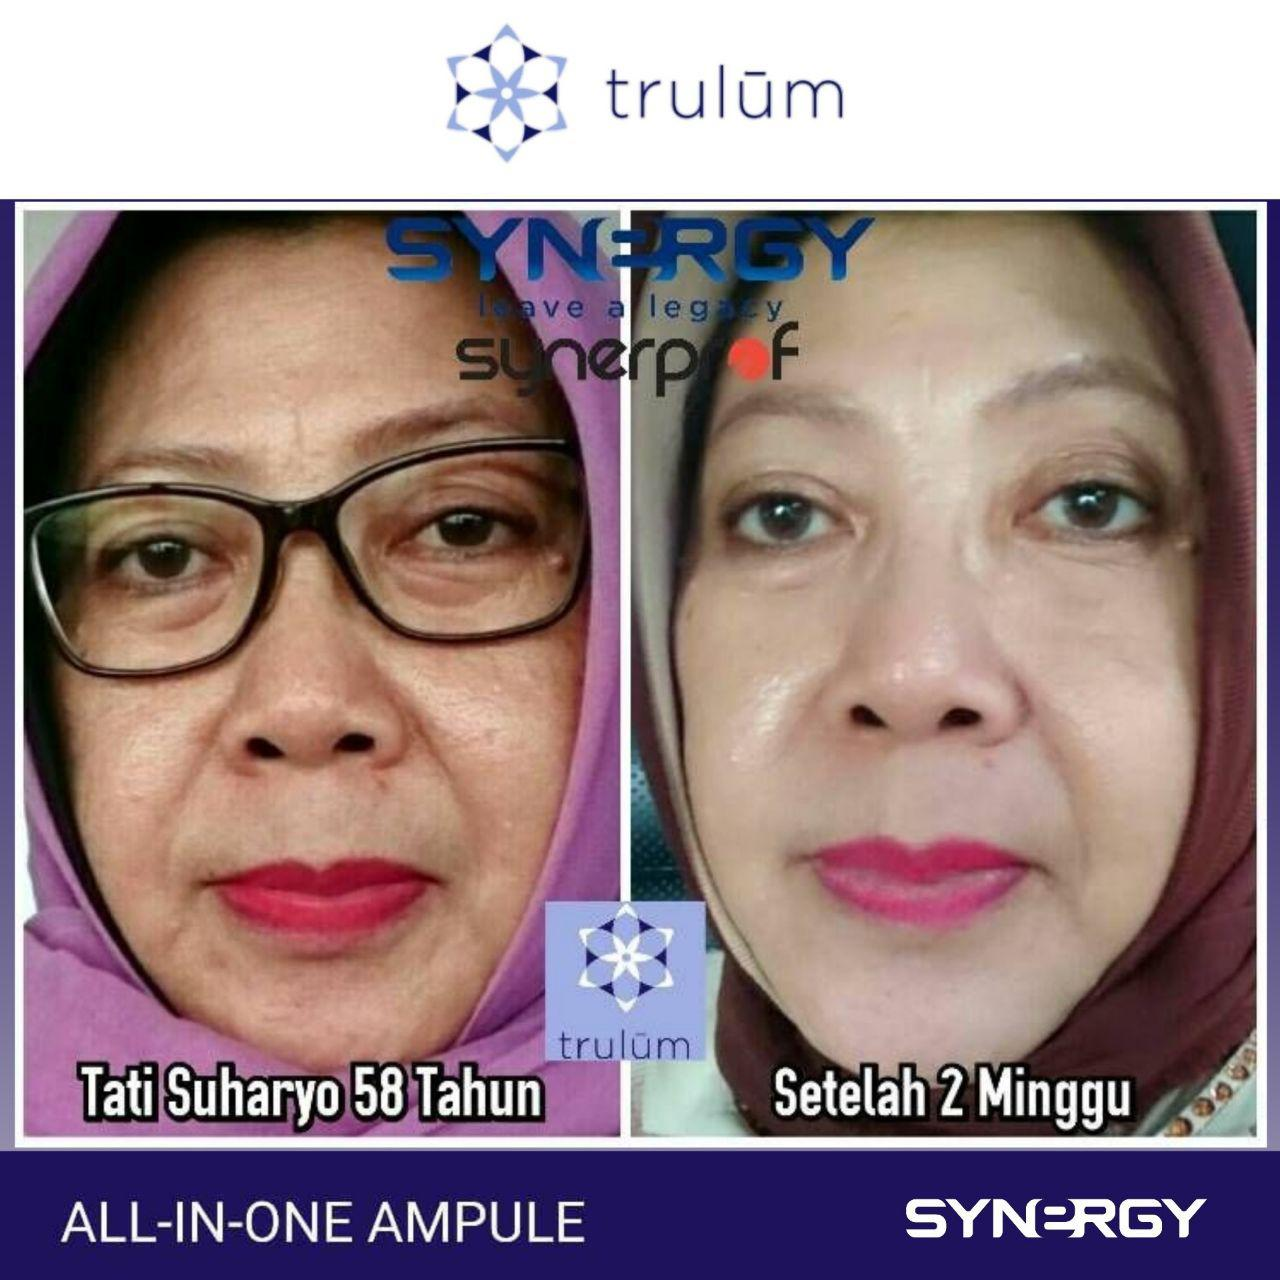 Jual Trulum All In One Di Siberut Tengah WA: 08112338376